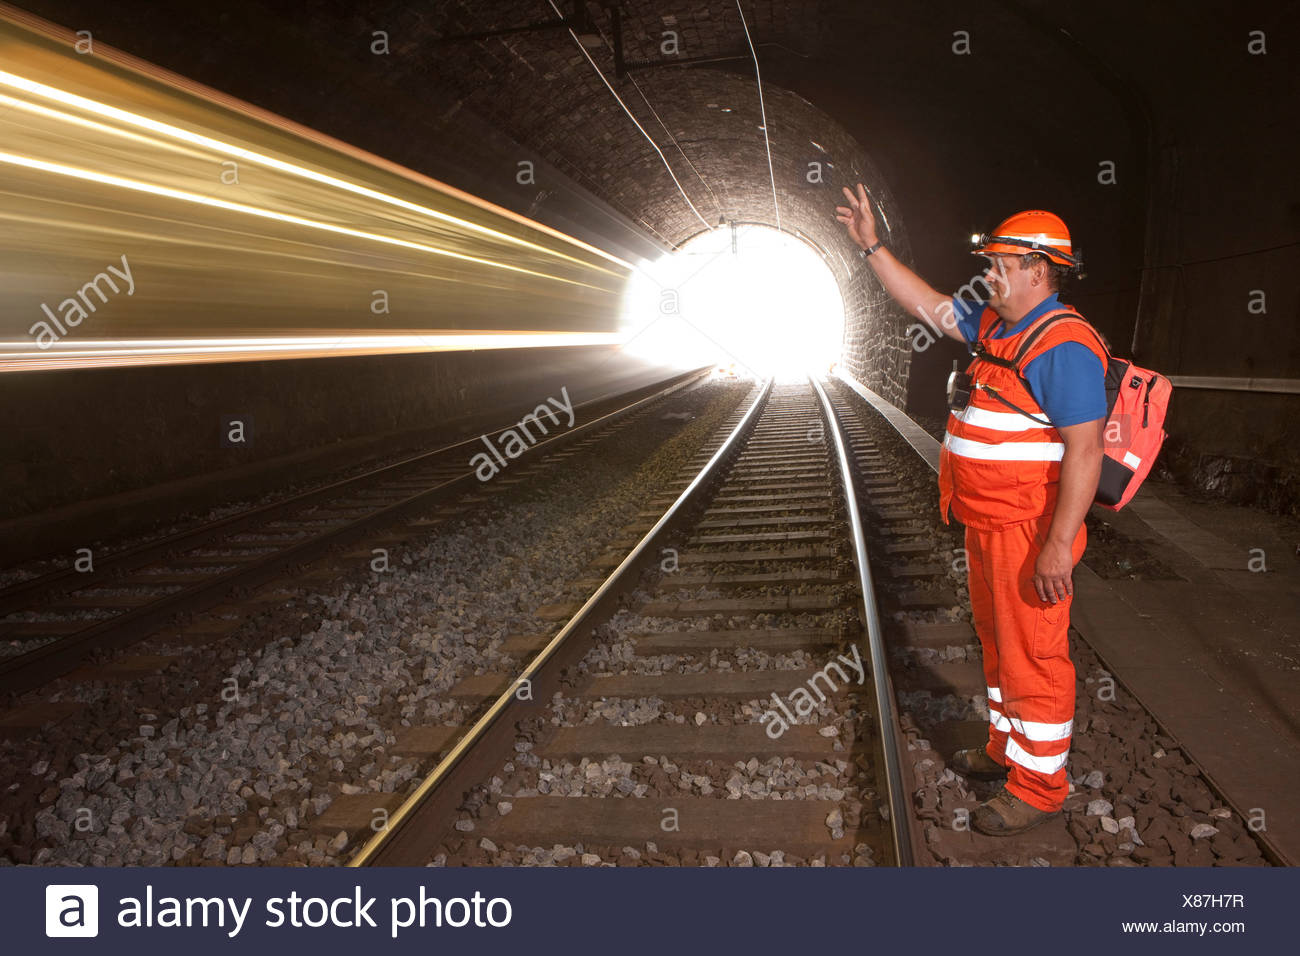 linesman, tunnel, road, railway, train, railroad, Lötschberg, BLS, Switzerland, Europe, security, safety, Bernese Oberland, ligh - Stock Image